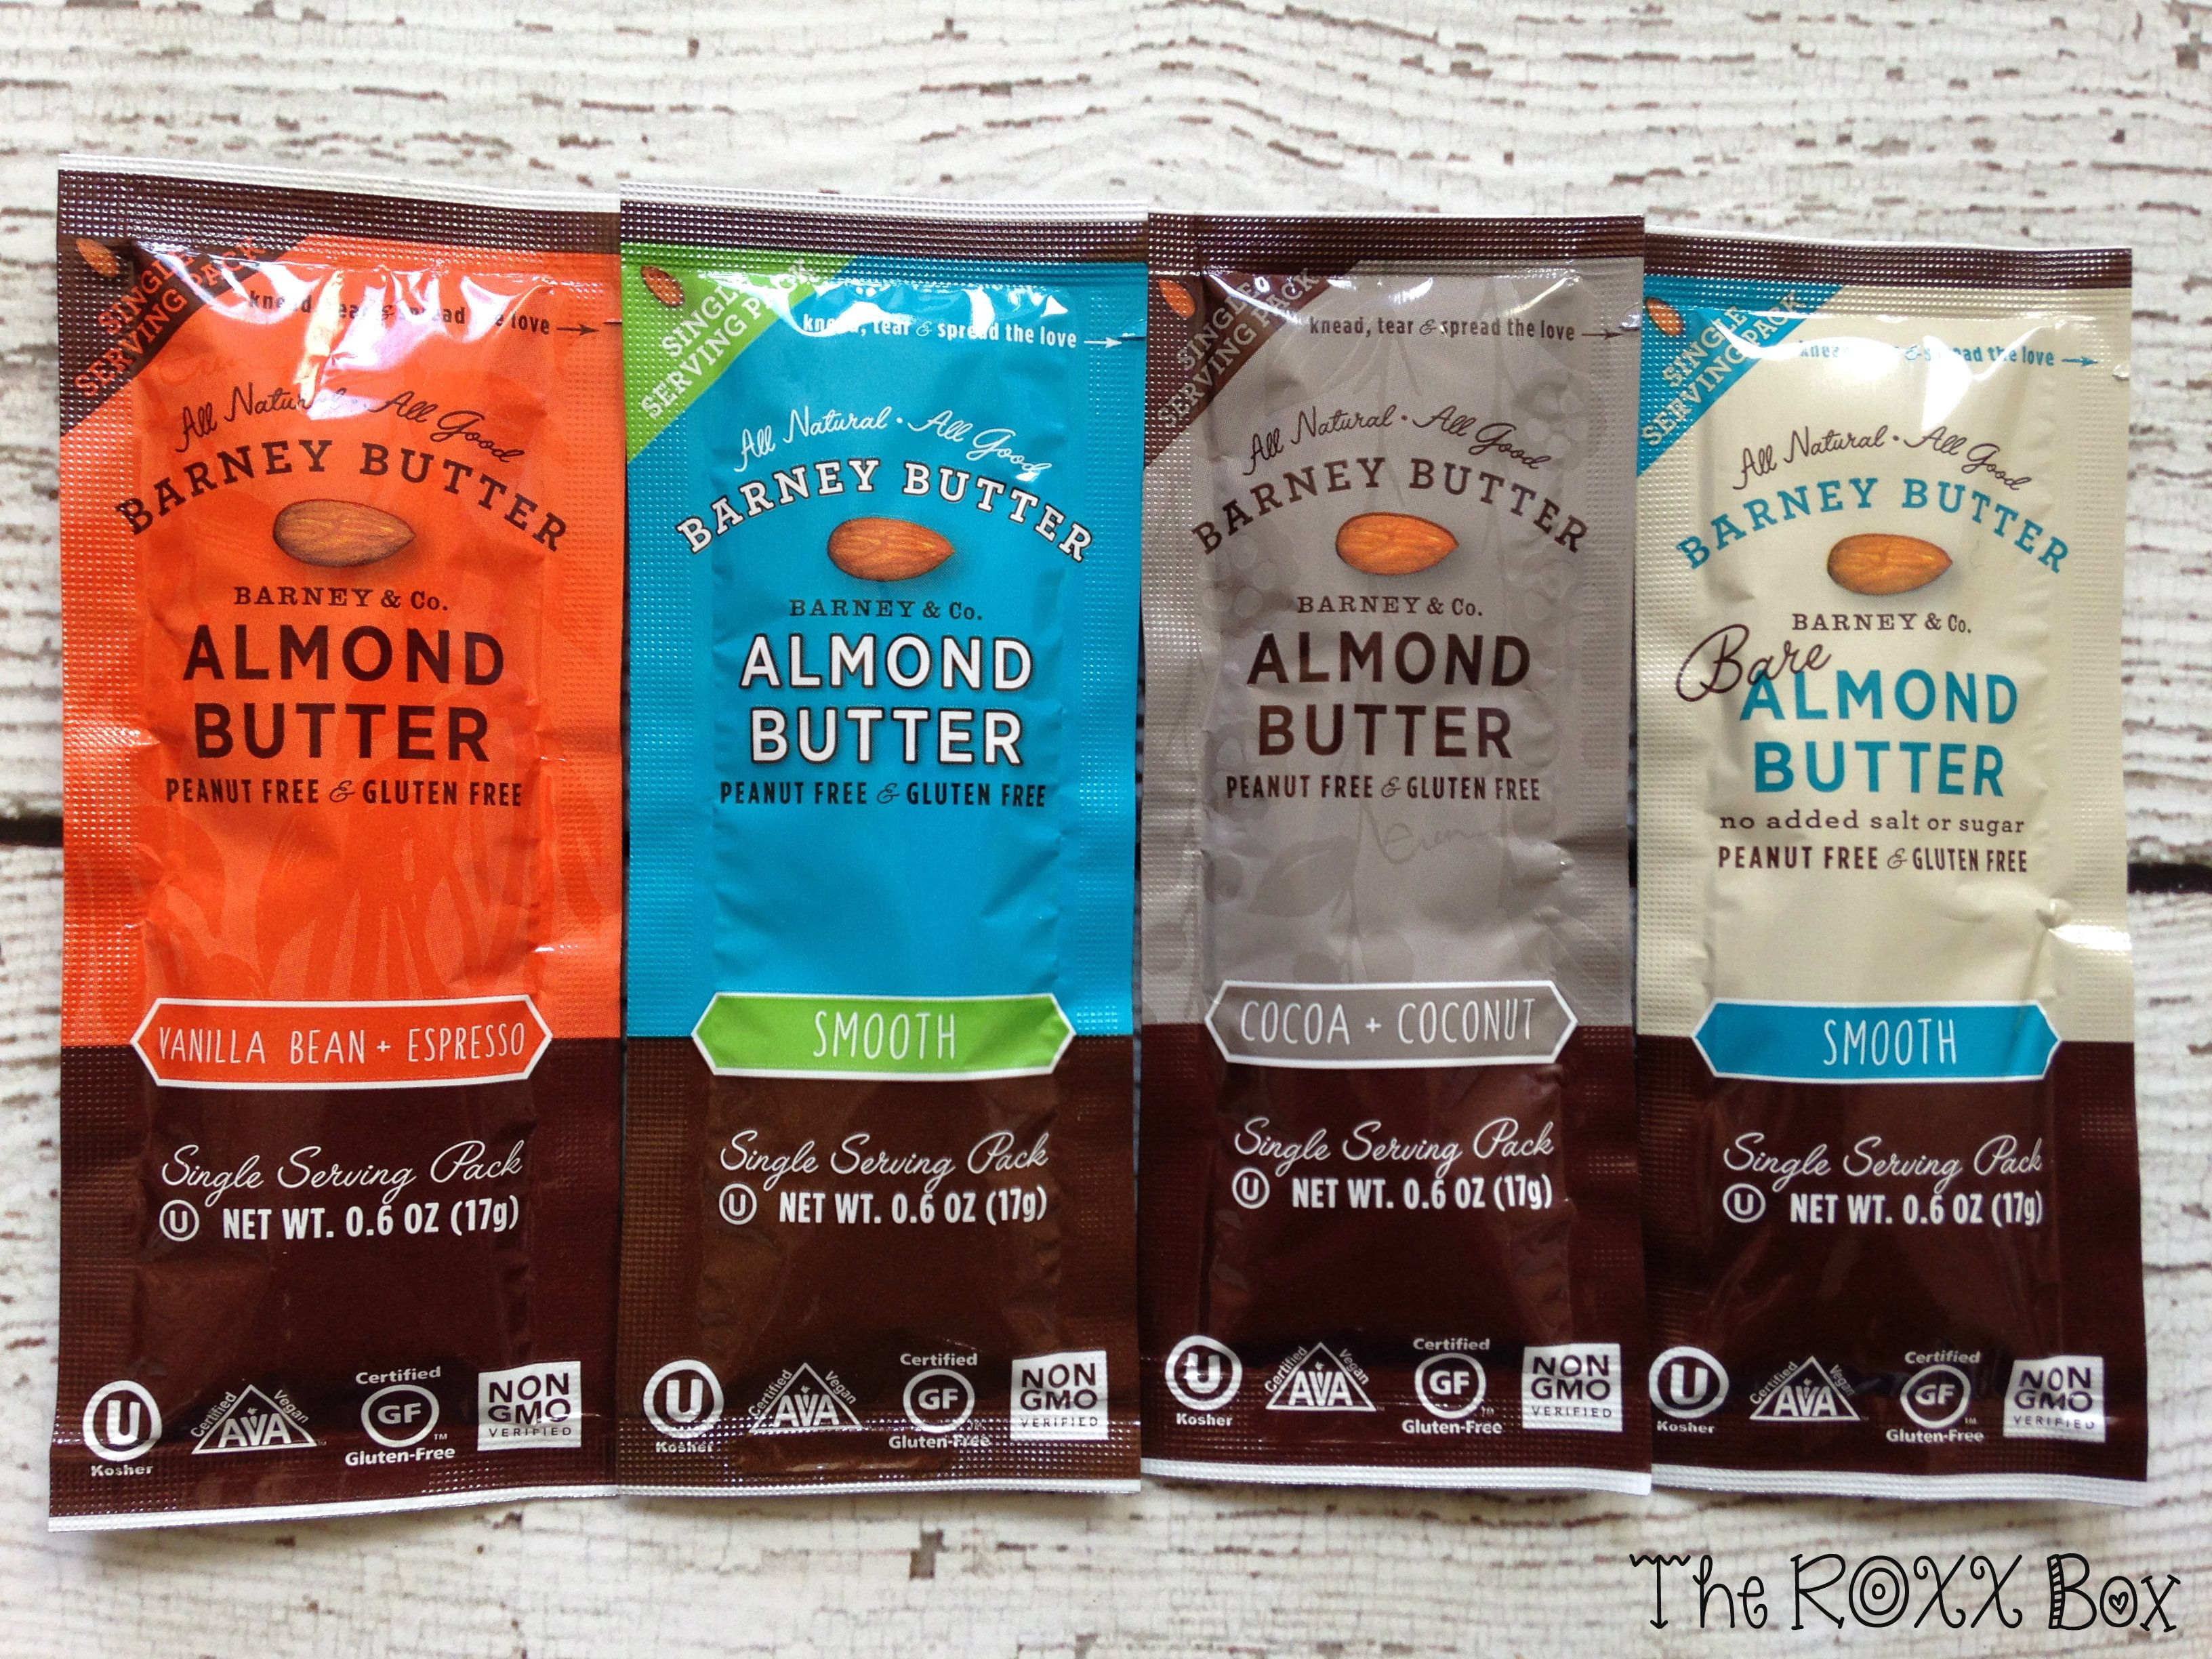 Amazing Almond Butter Brand Barney Butter Change Your Food It Tude With Our Easy Nourishing And Delicious Recipes By Two Former College Athletes Butter Brands Gluten Free Butter Almond Butter